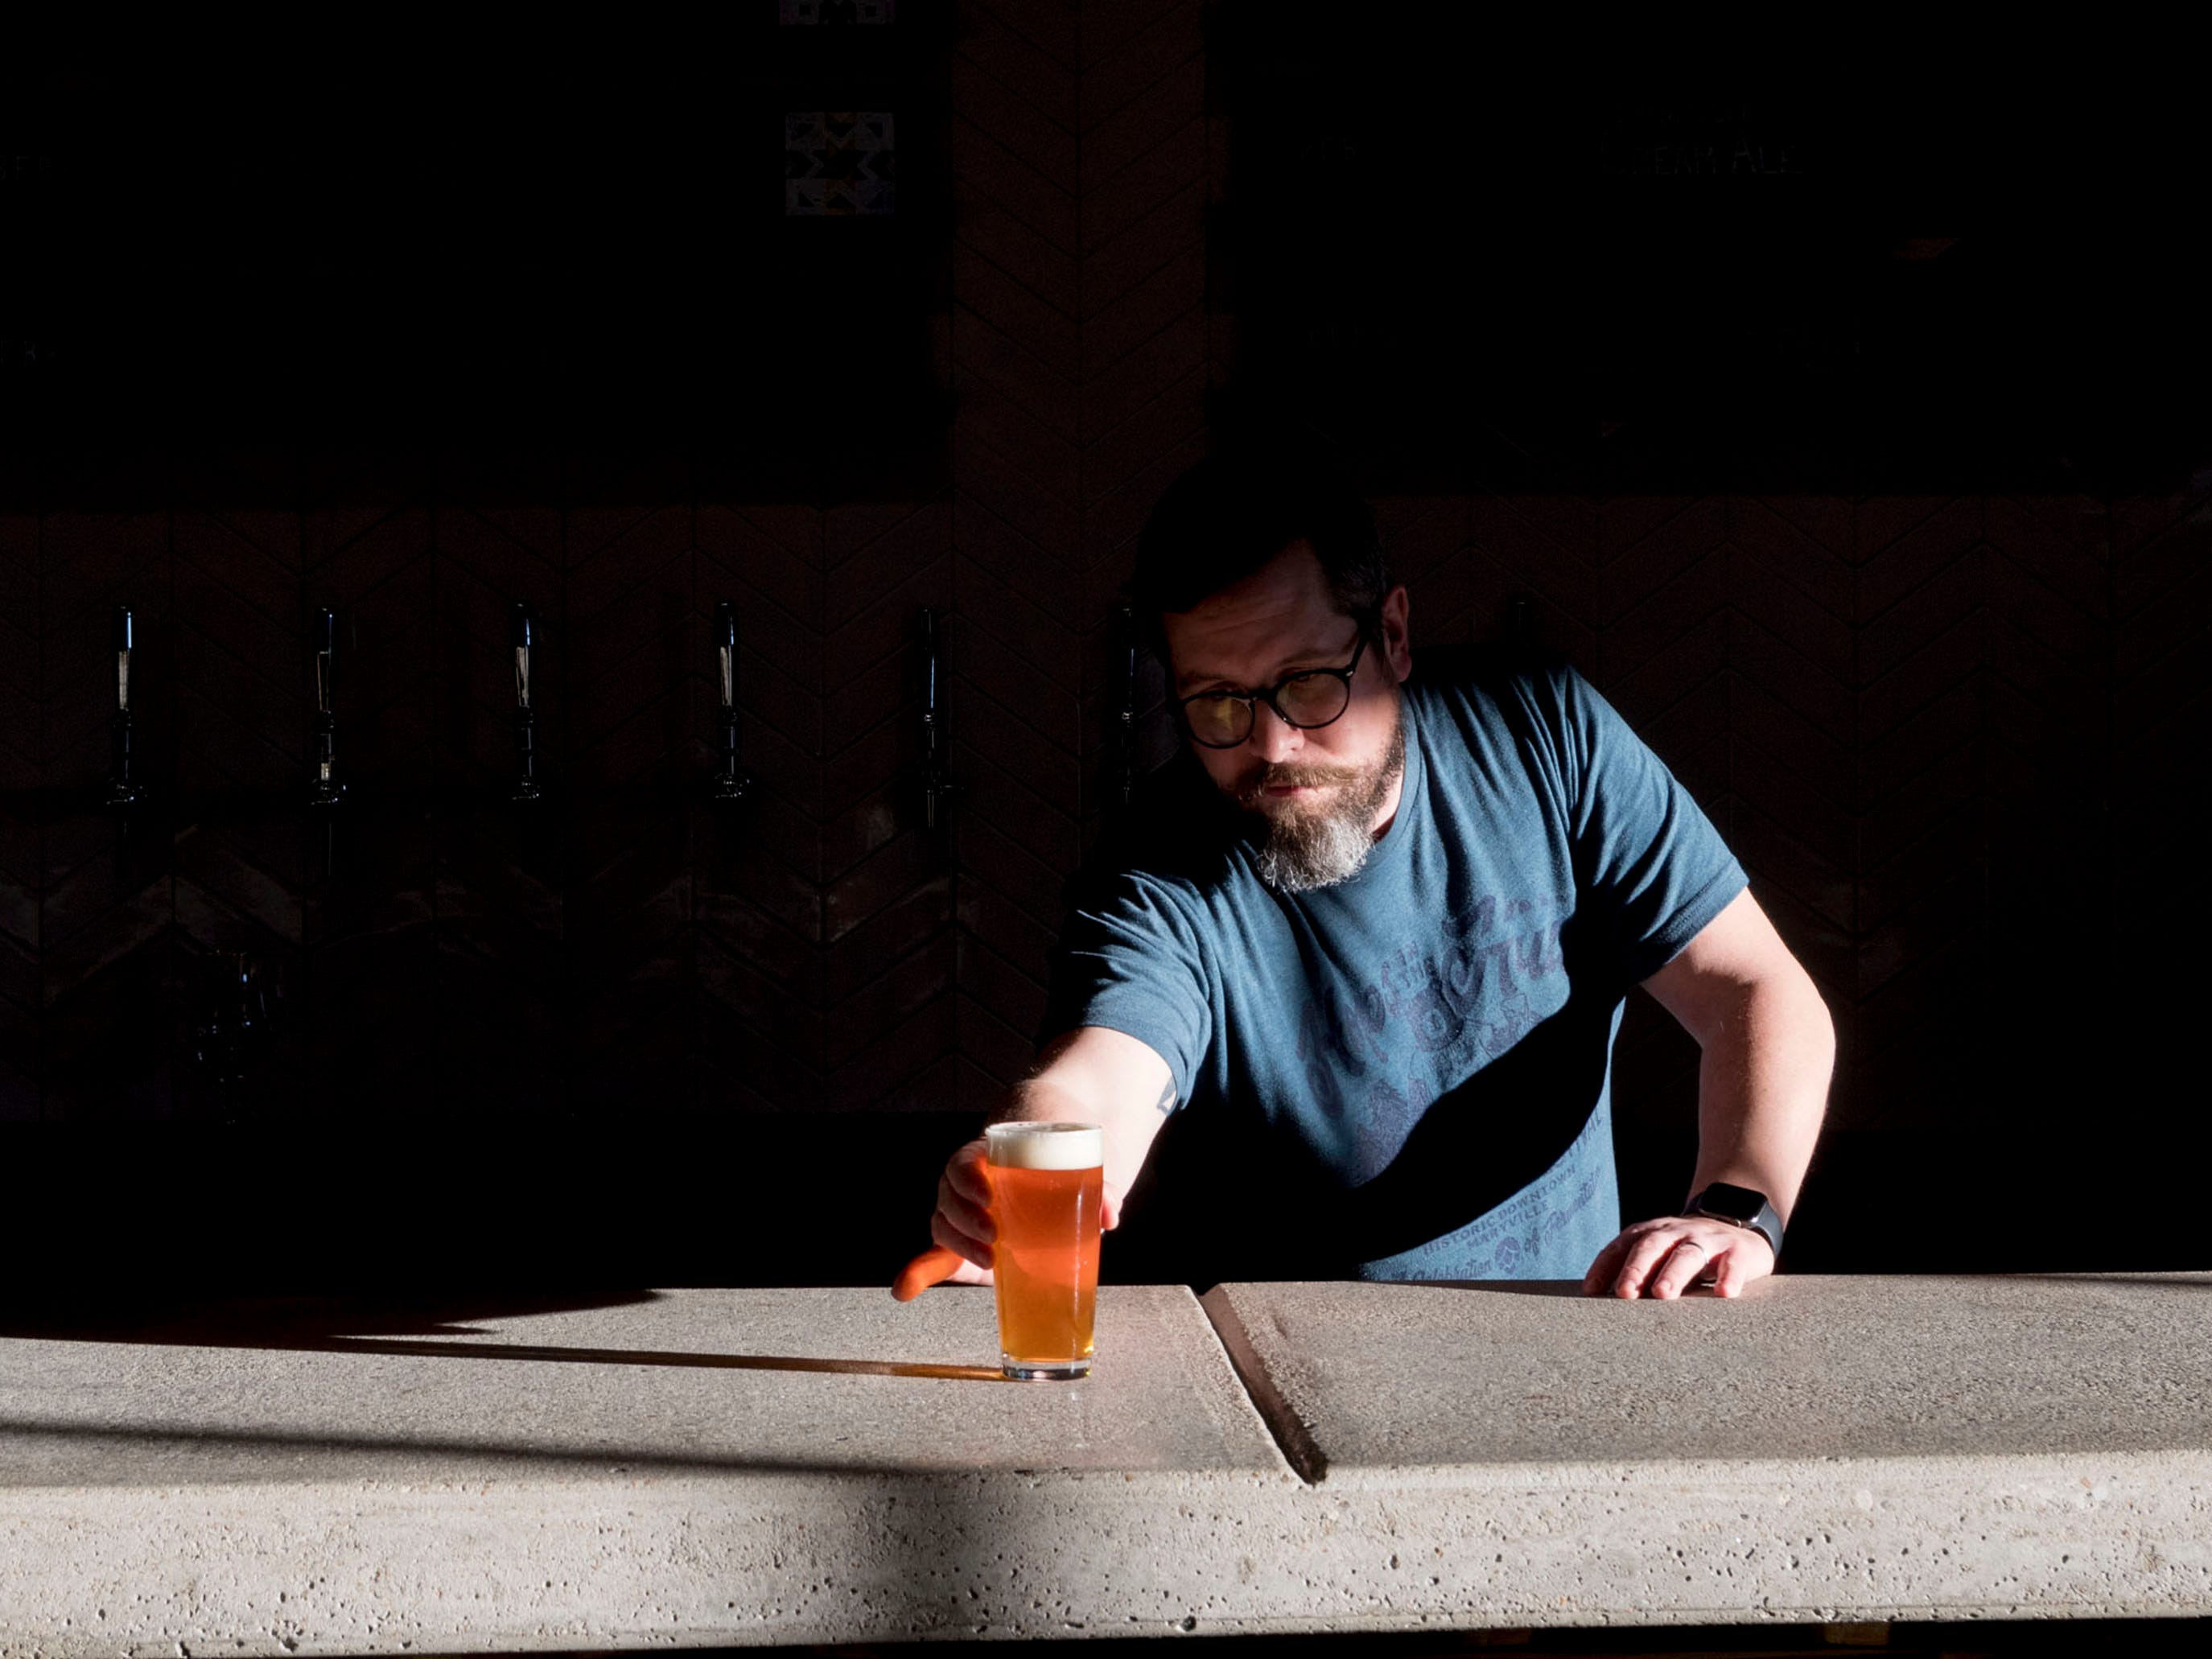 Blackberry Farm Brewery manager Andrew Noye serves a pint of the Brewery's English Pale Ale.